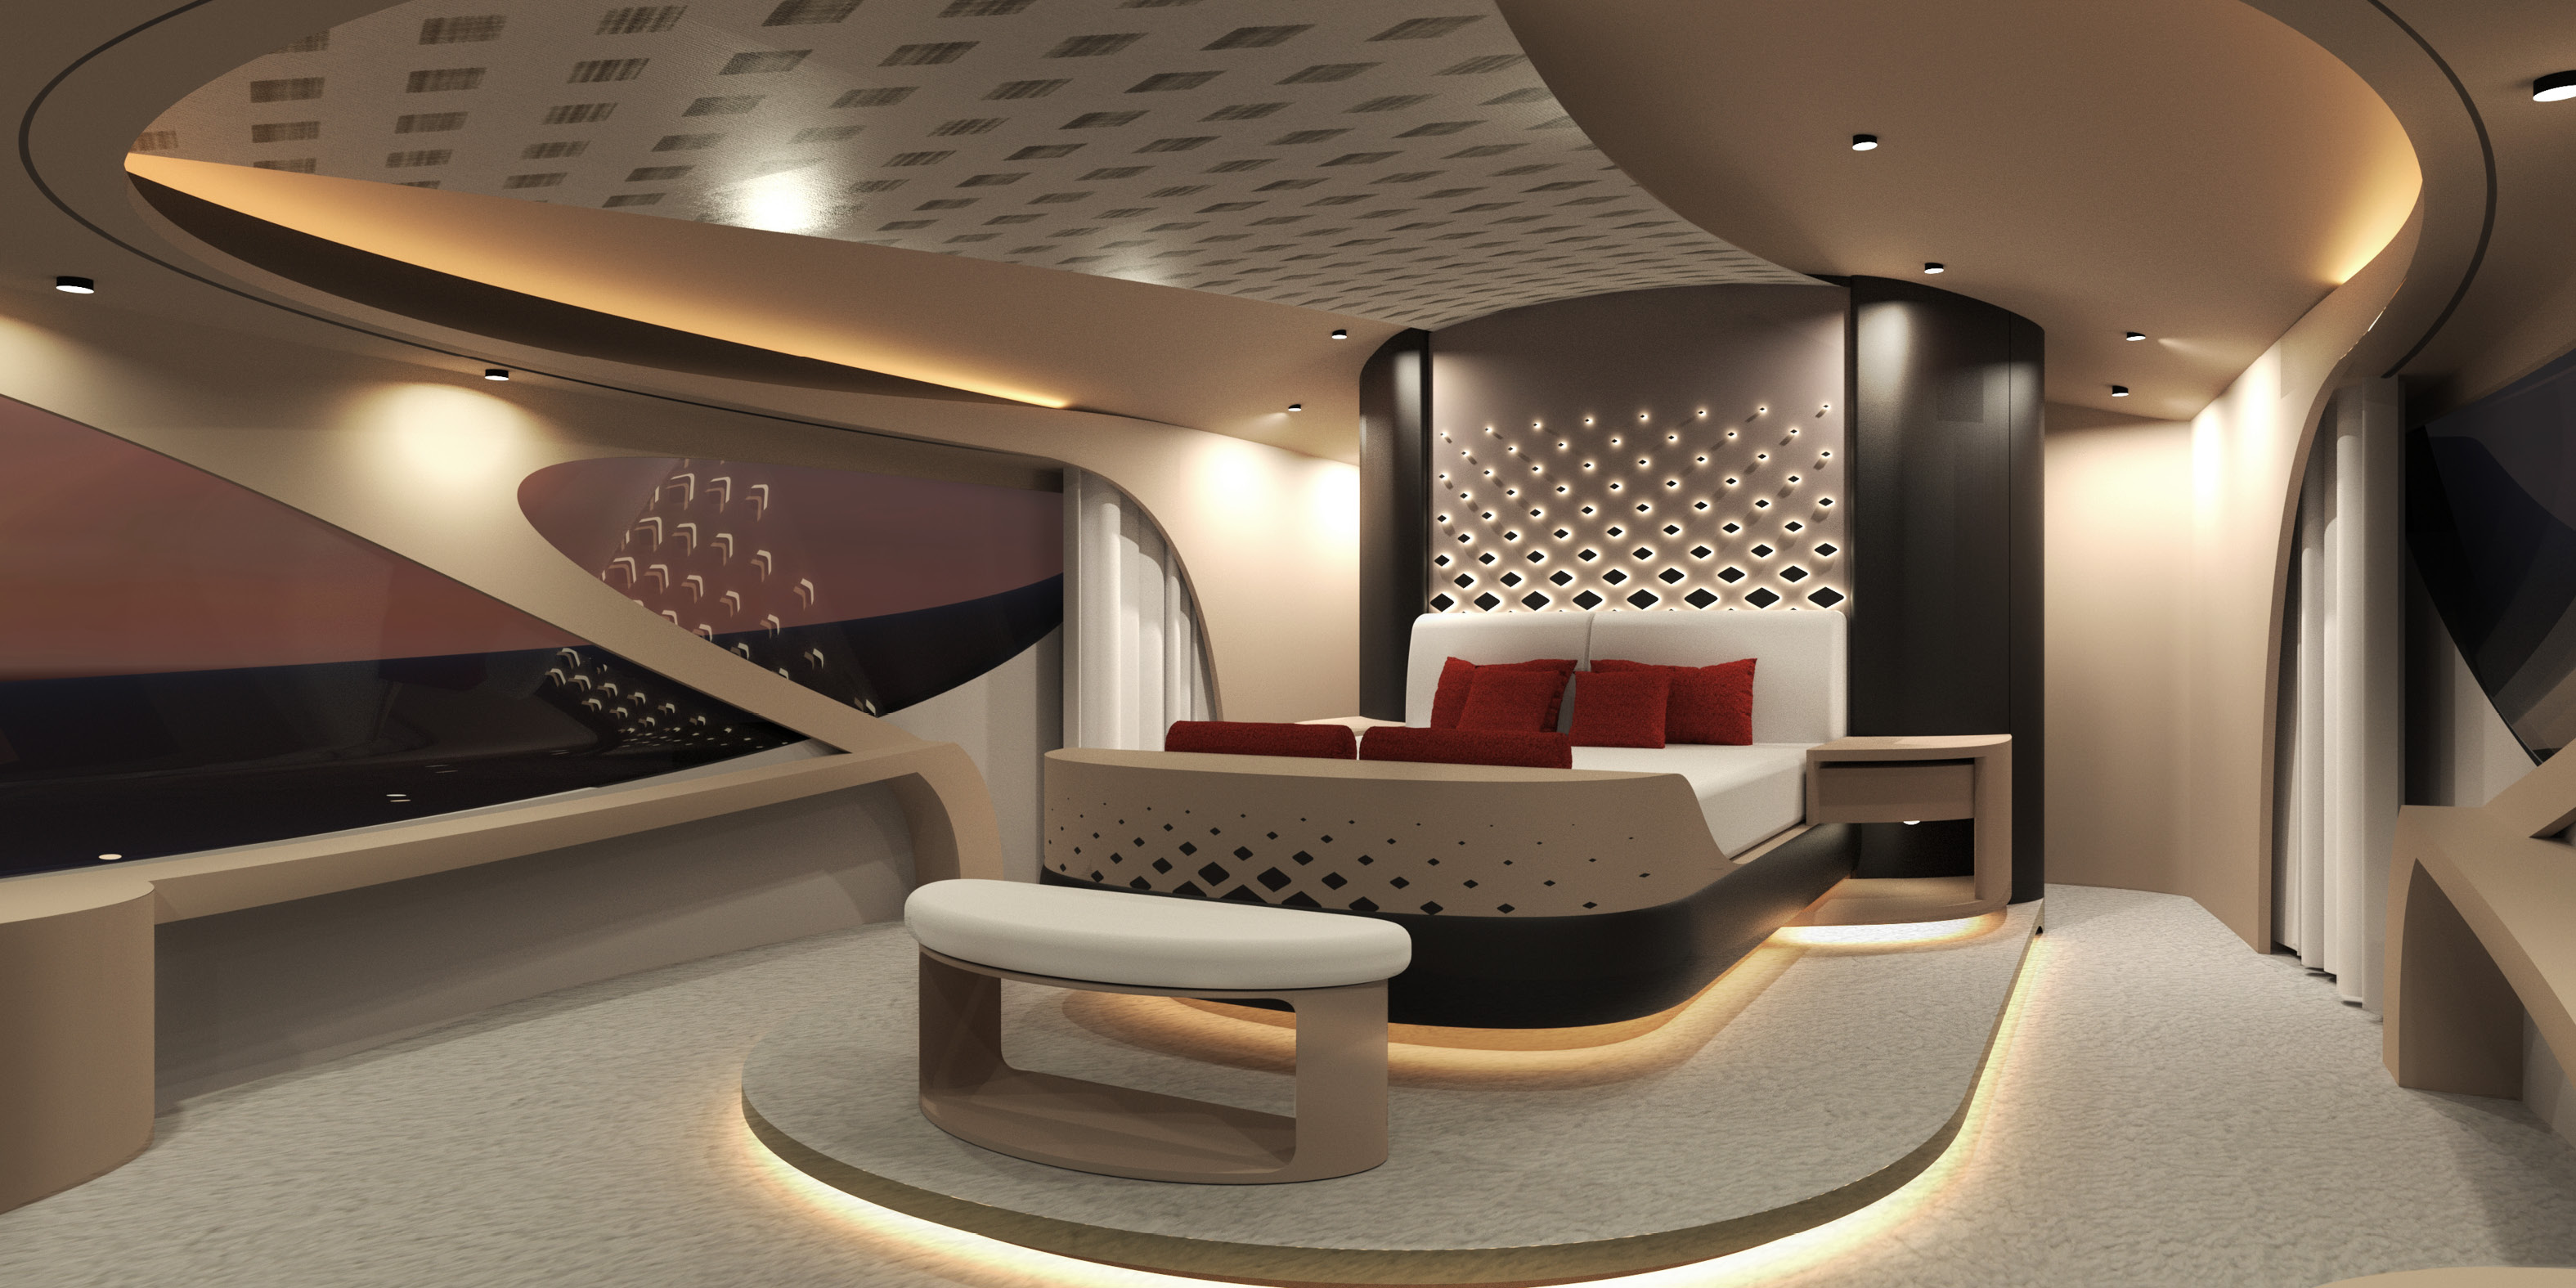 Interior accommodation luxury superyacht concept cercio for Interior design concept